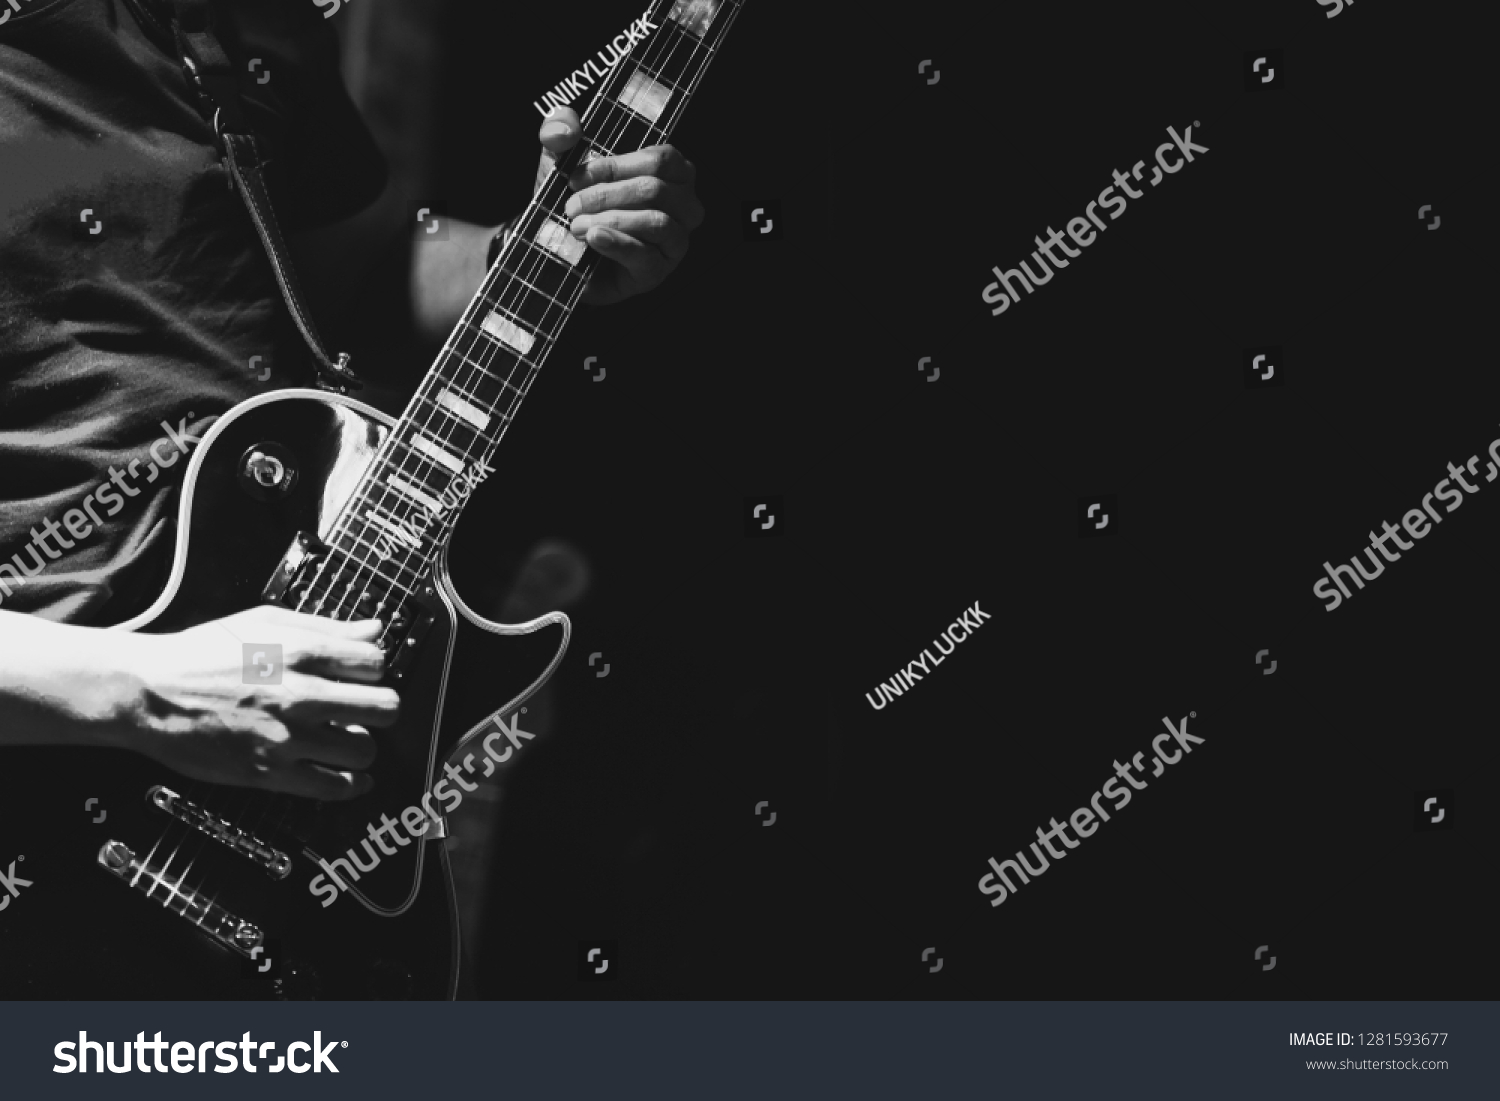 Guitarist on stage for background, soft and blur concept. Close up hand playing guitar. young musician playing guitar, live music background.Band performs on stage, rock music concert. #1281593677